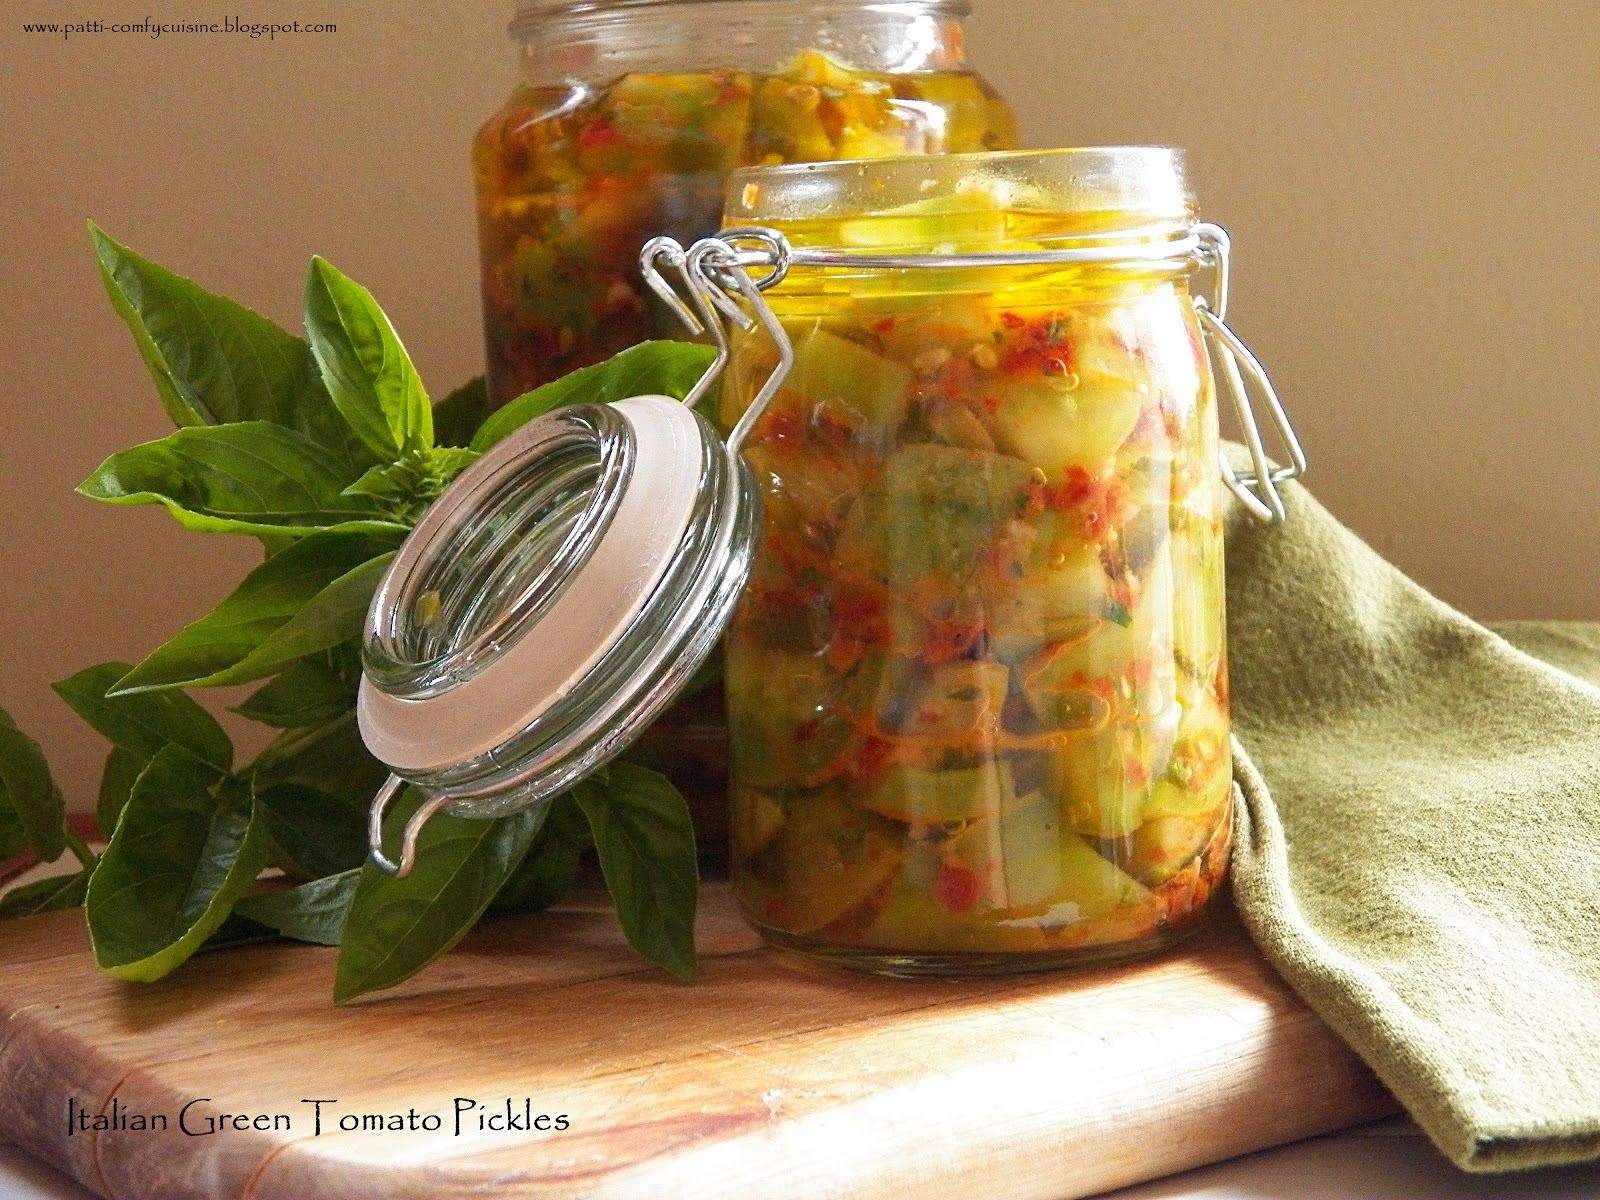 ... Green Tomato Pickles would be perfect for an antipasti platter